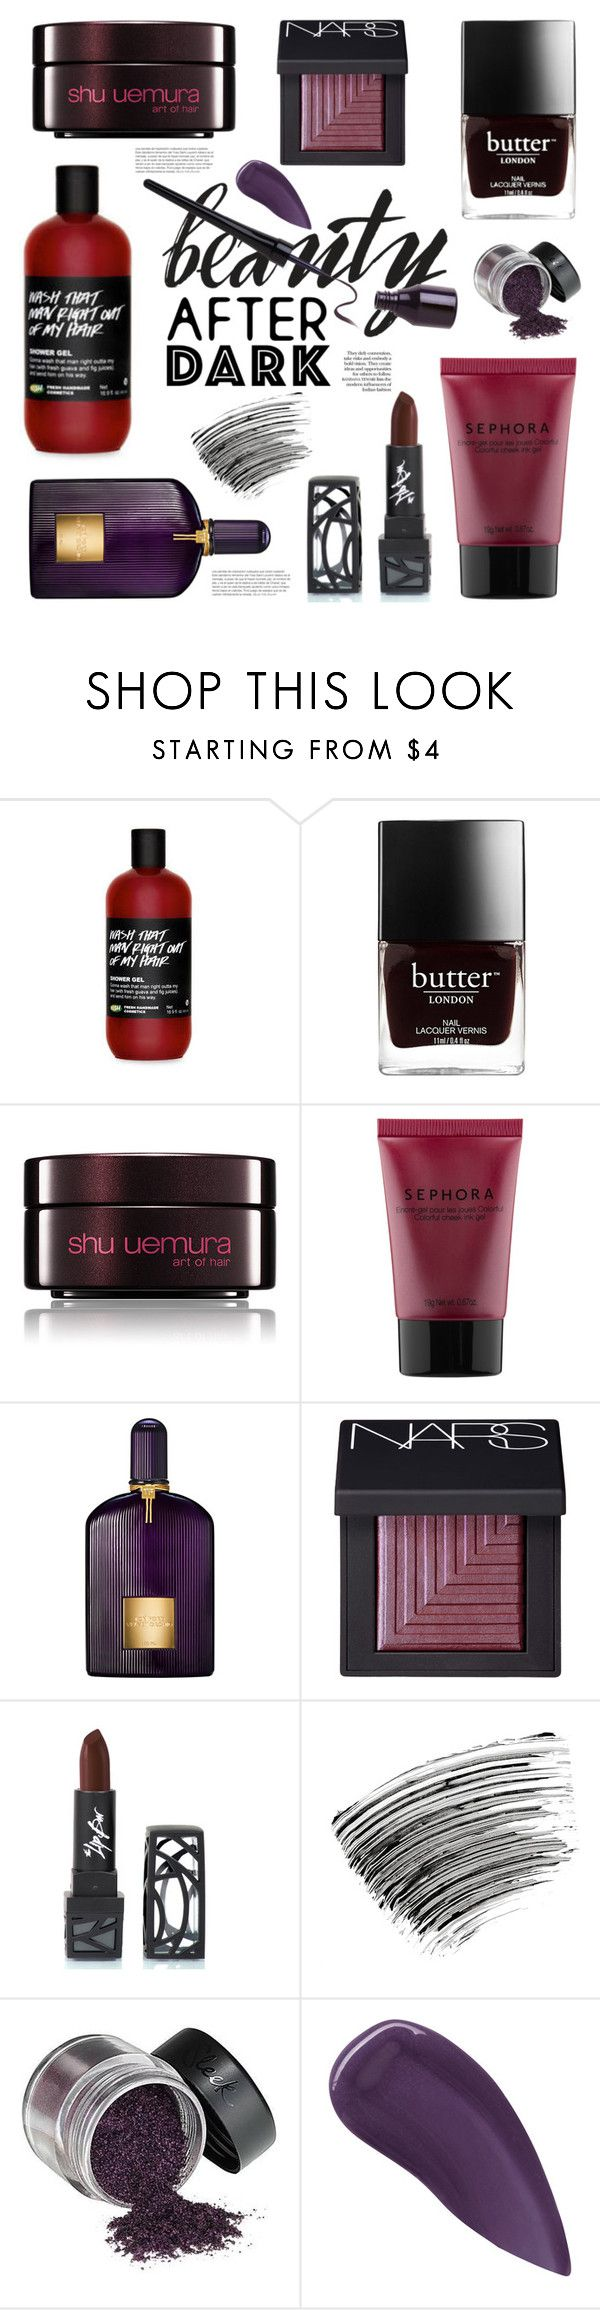 """""""Beauty After Dark"""" by chezamanda ❤ liked on Polyvore featuring beauty, Butter London, shu uemura, Sephora Collection, Tom Ford, NARS Cosmetics, The Lip Bar, Bobbi Brown Cosmetics and Lipstick Queen"""